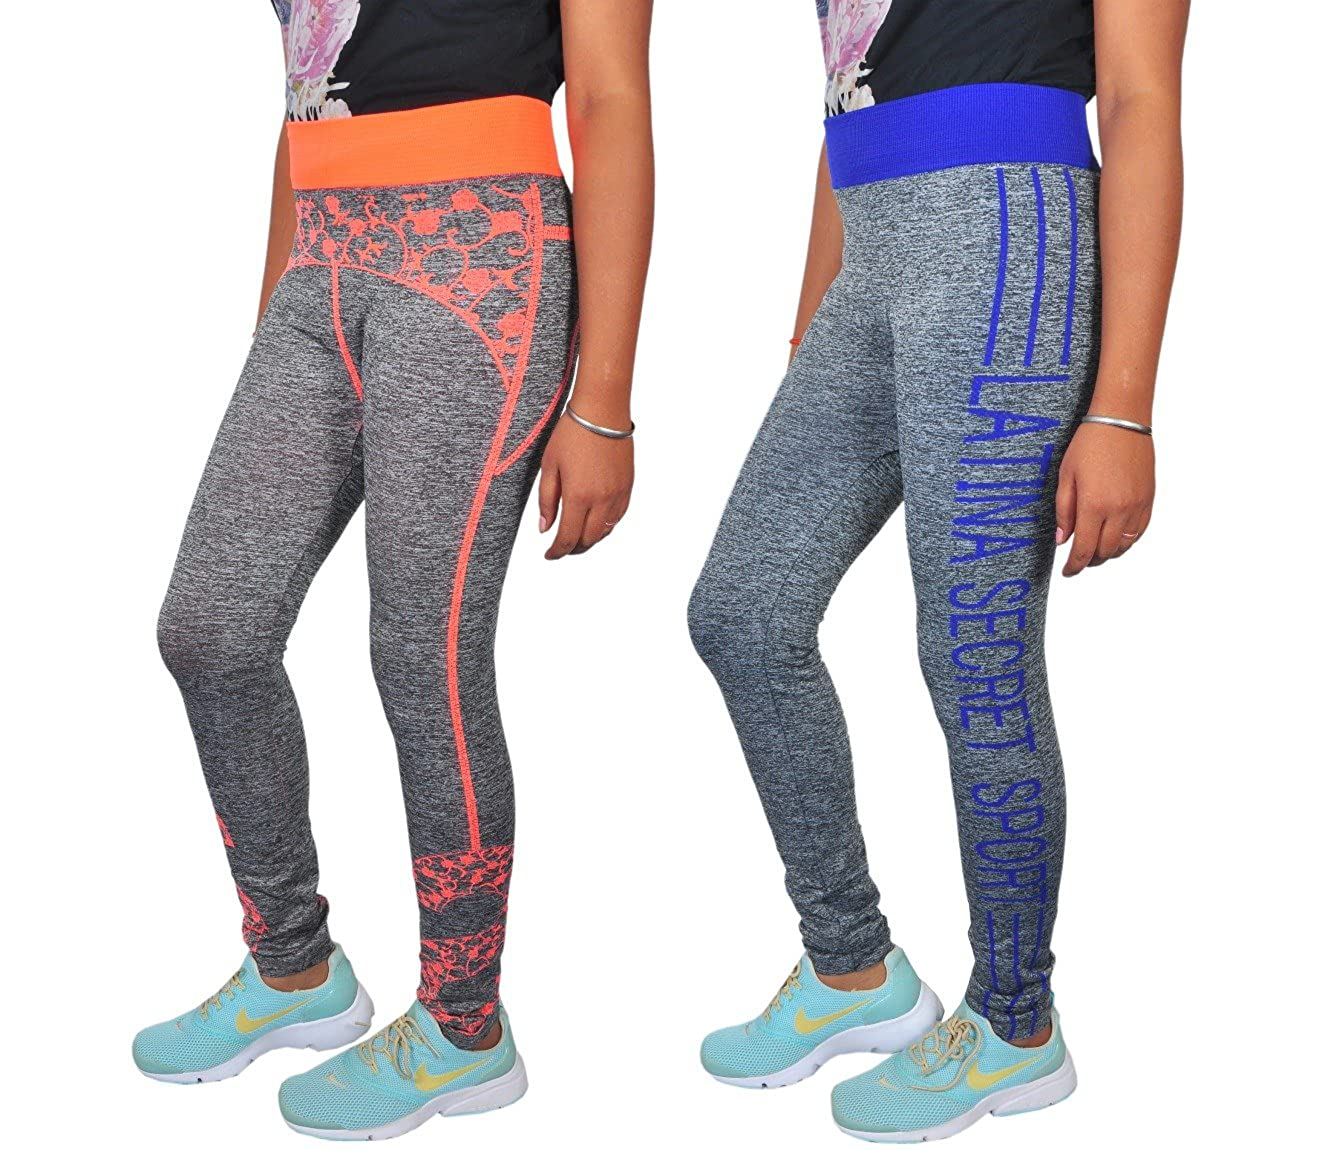 6a7f4b4e7b4b6f Golazo Girl's Stretchable High Waist Compression Yoga Fitness Tummy tuck  Sports And Gym Running Pant/Leggings for Womens free Size fits 28 To 36  Waist Combo ...